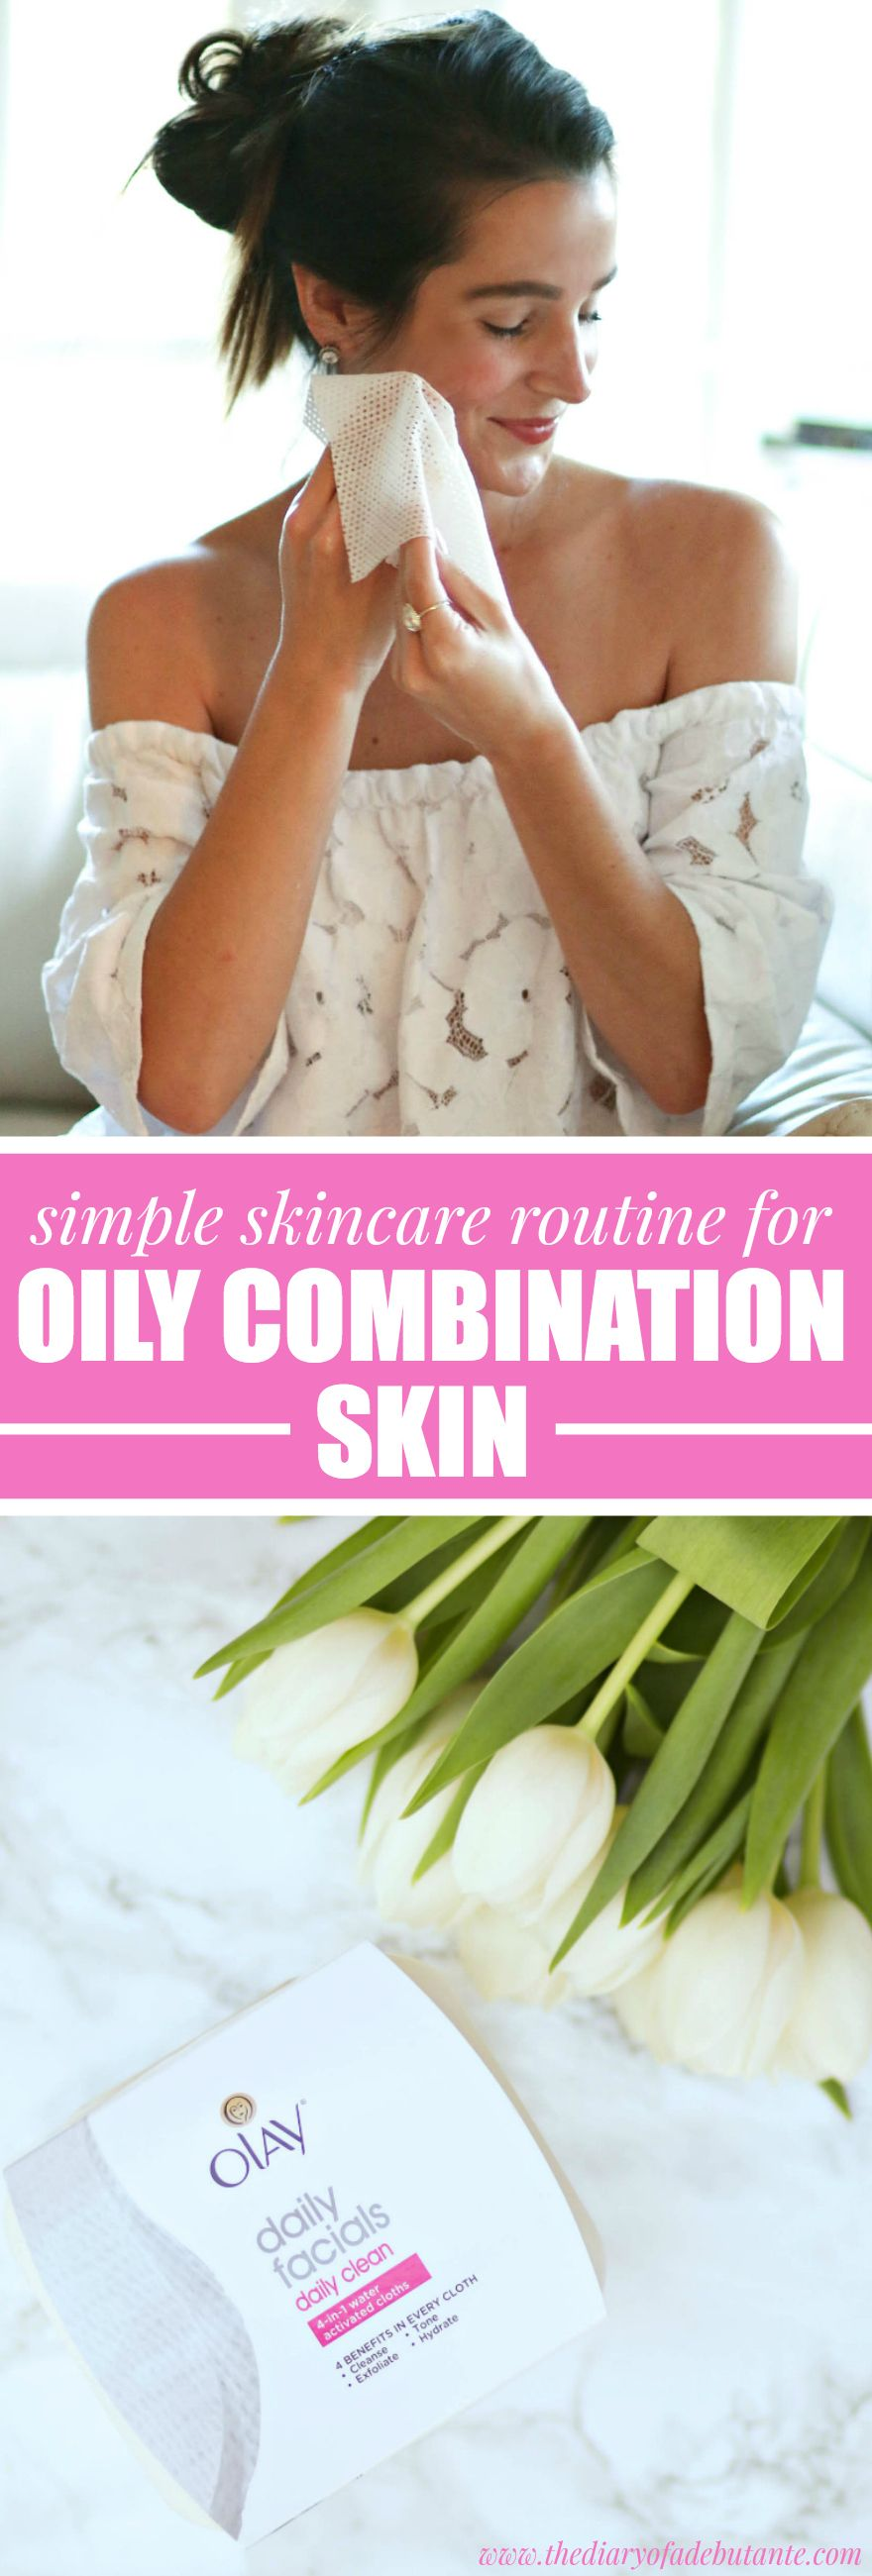 Best Face Wash for Oily Combination Skin from Olay